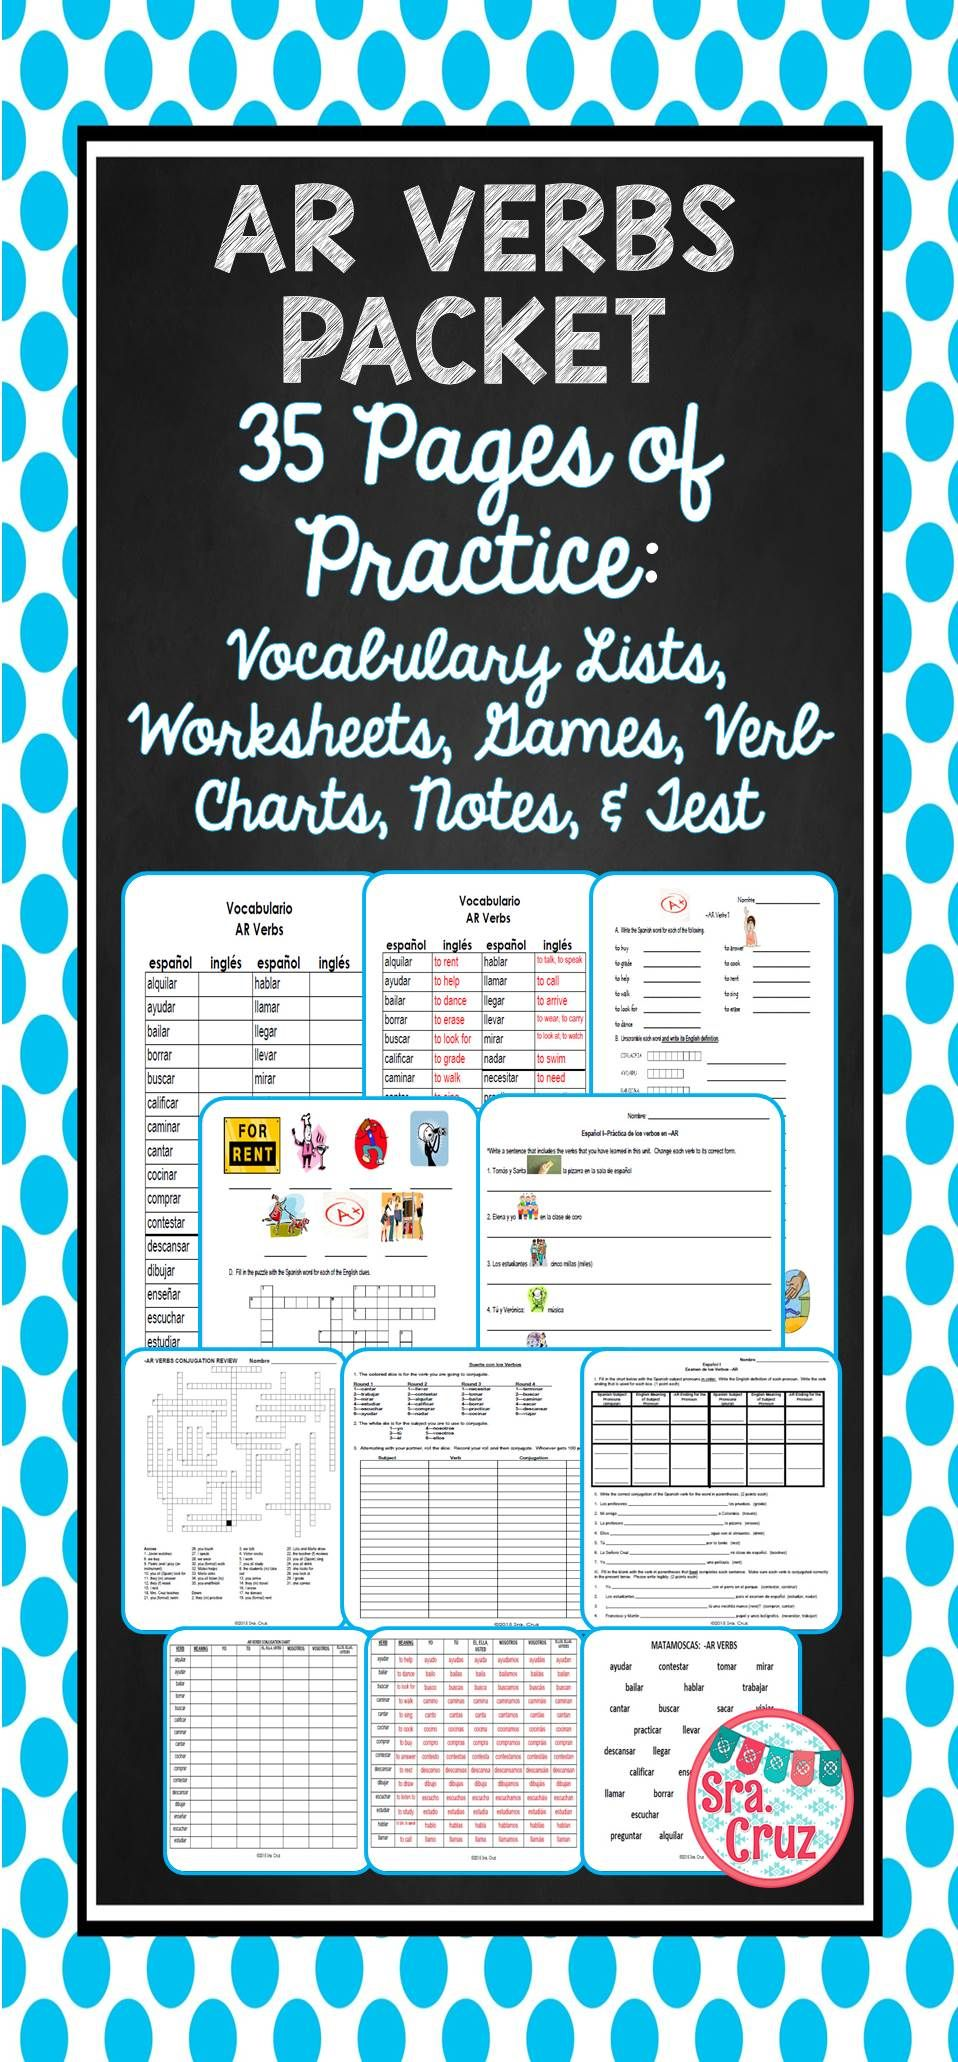 Ar Verbs Packet This 35 Page Editable Word Document Has Everything Your Students Need To Practice The Definitions And Conjugation Verb Chart Spanish Verbs Verb